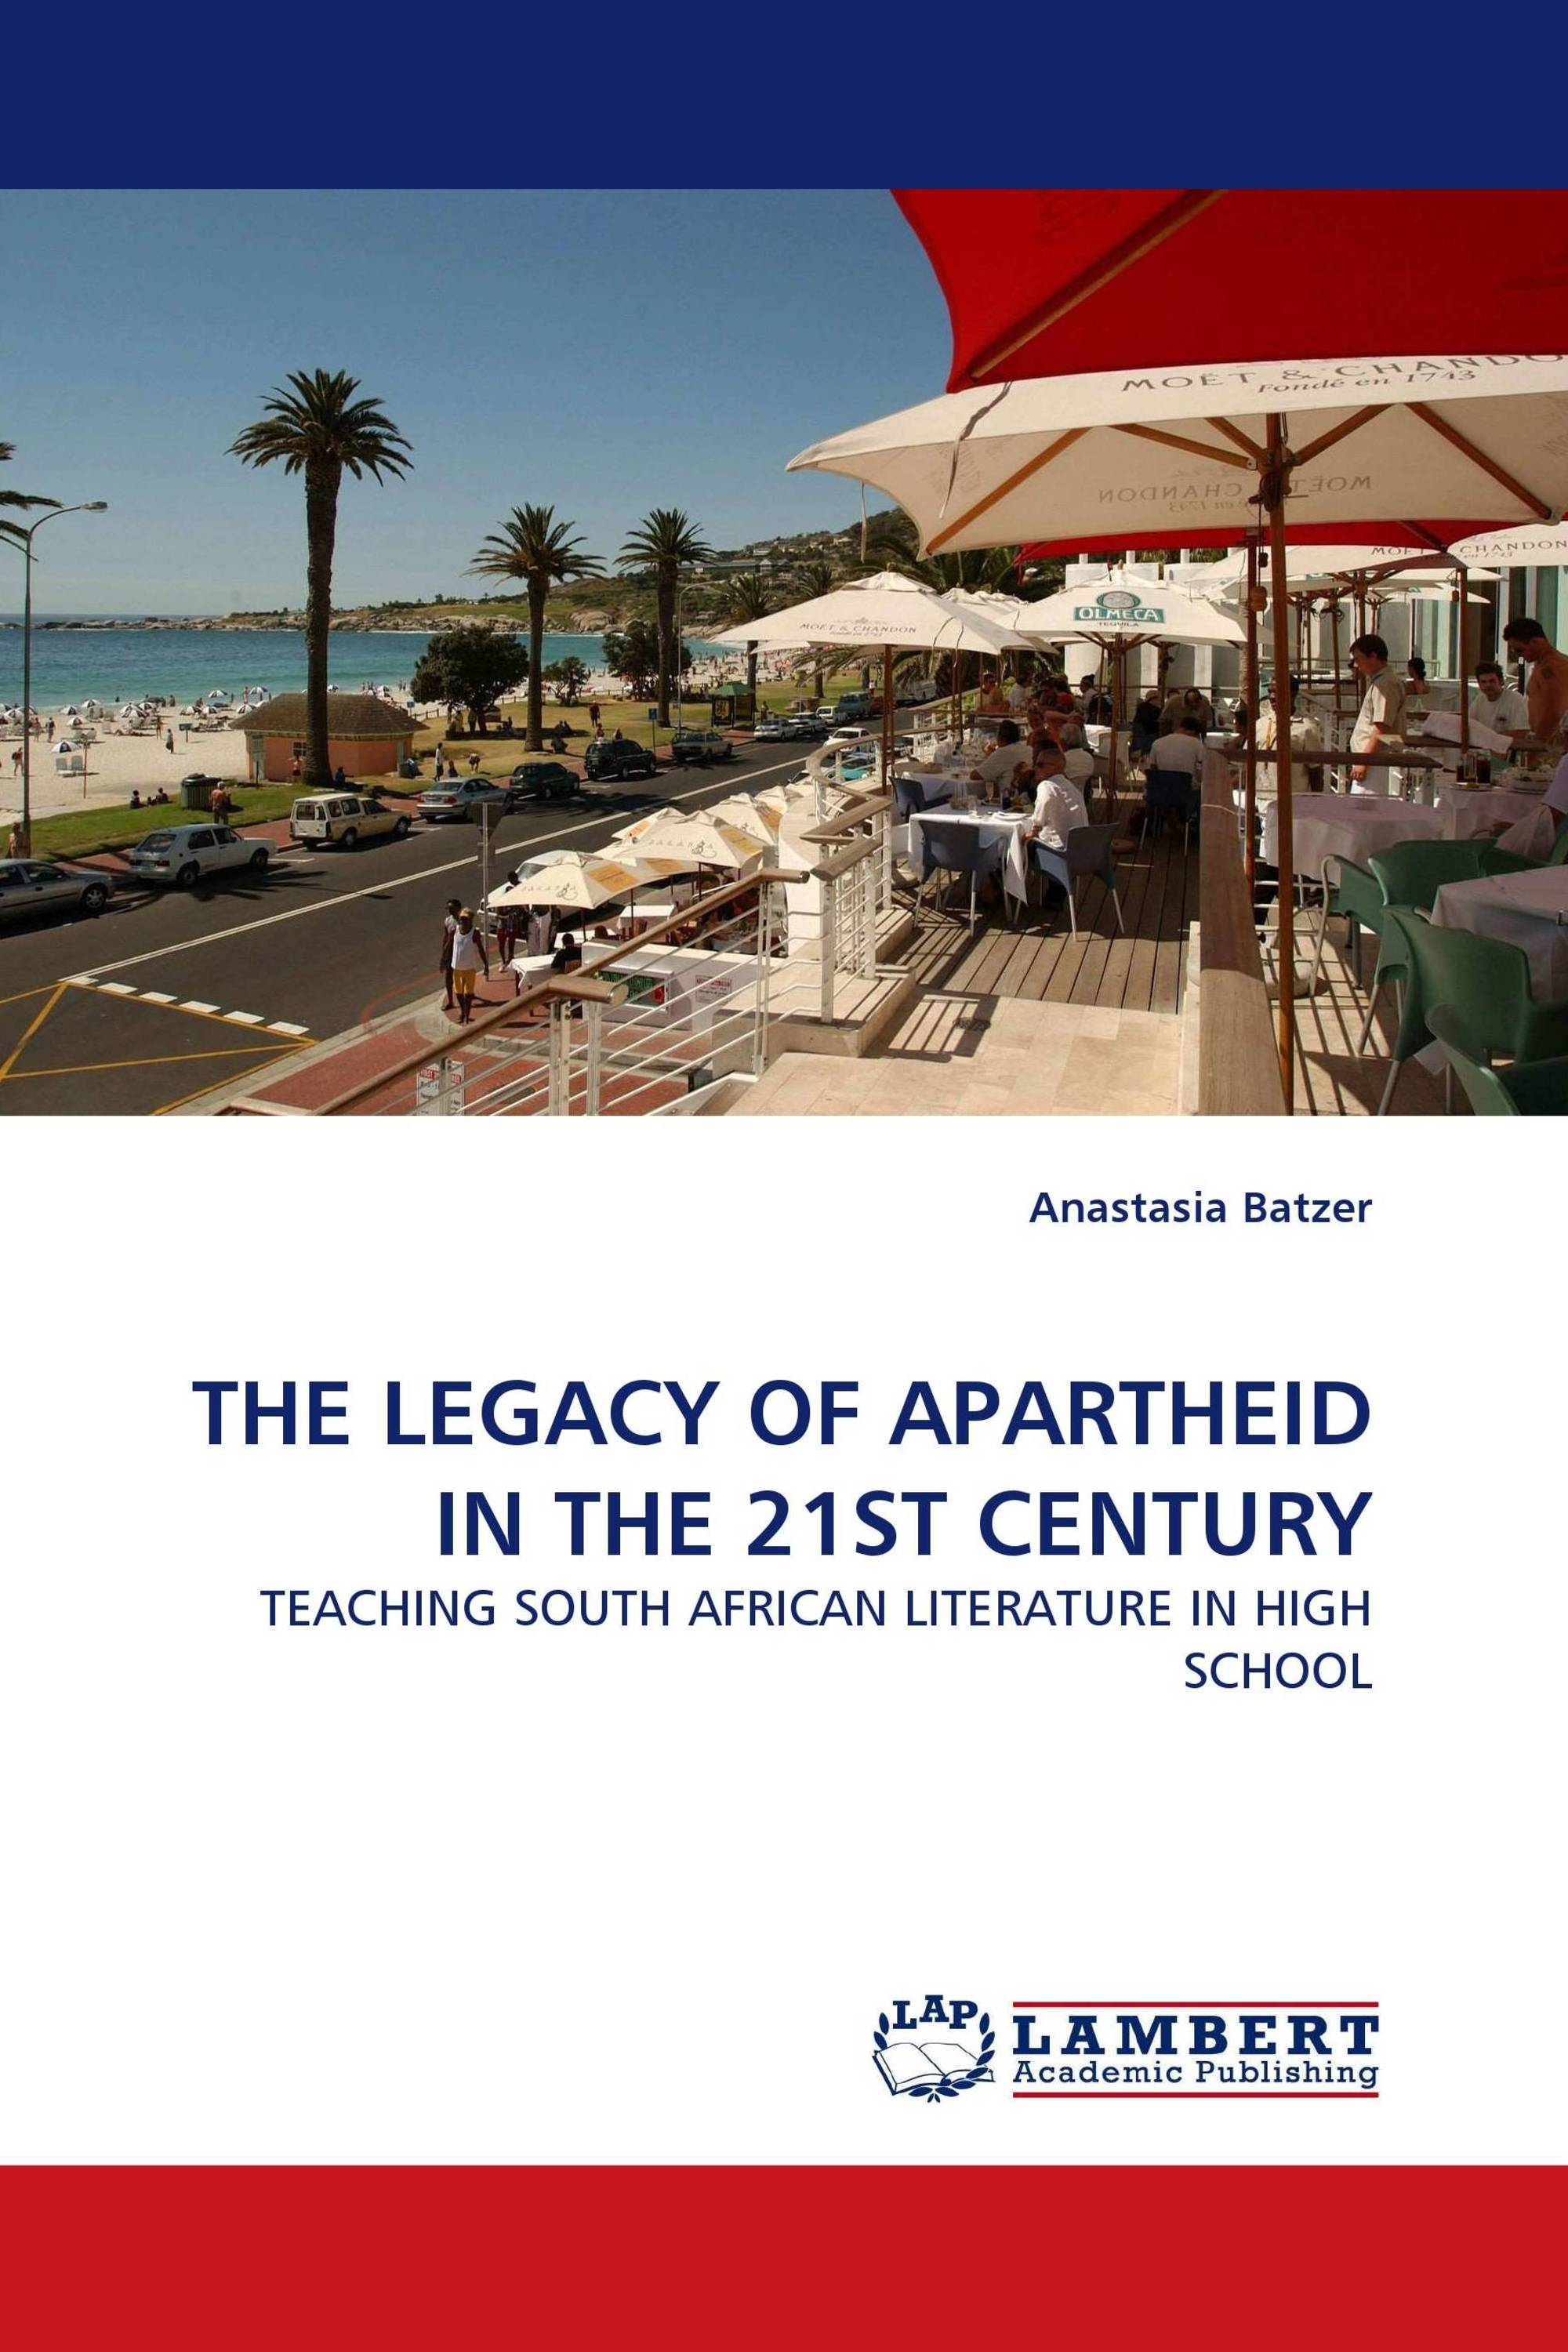 THE LEGACY OF APARTHEID IN THE 21ST CENTURY